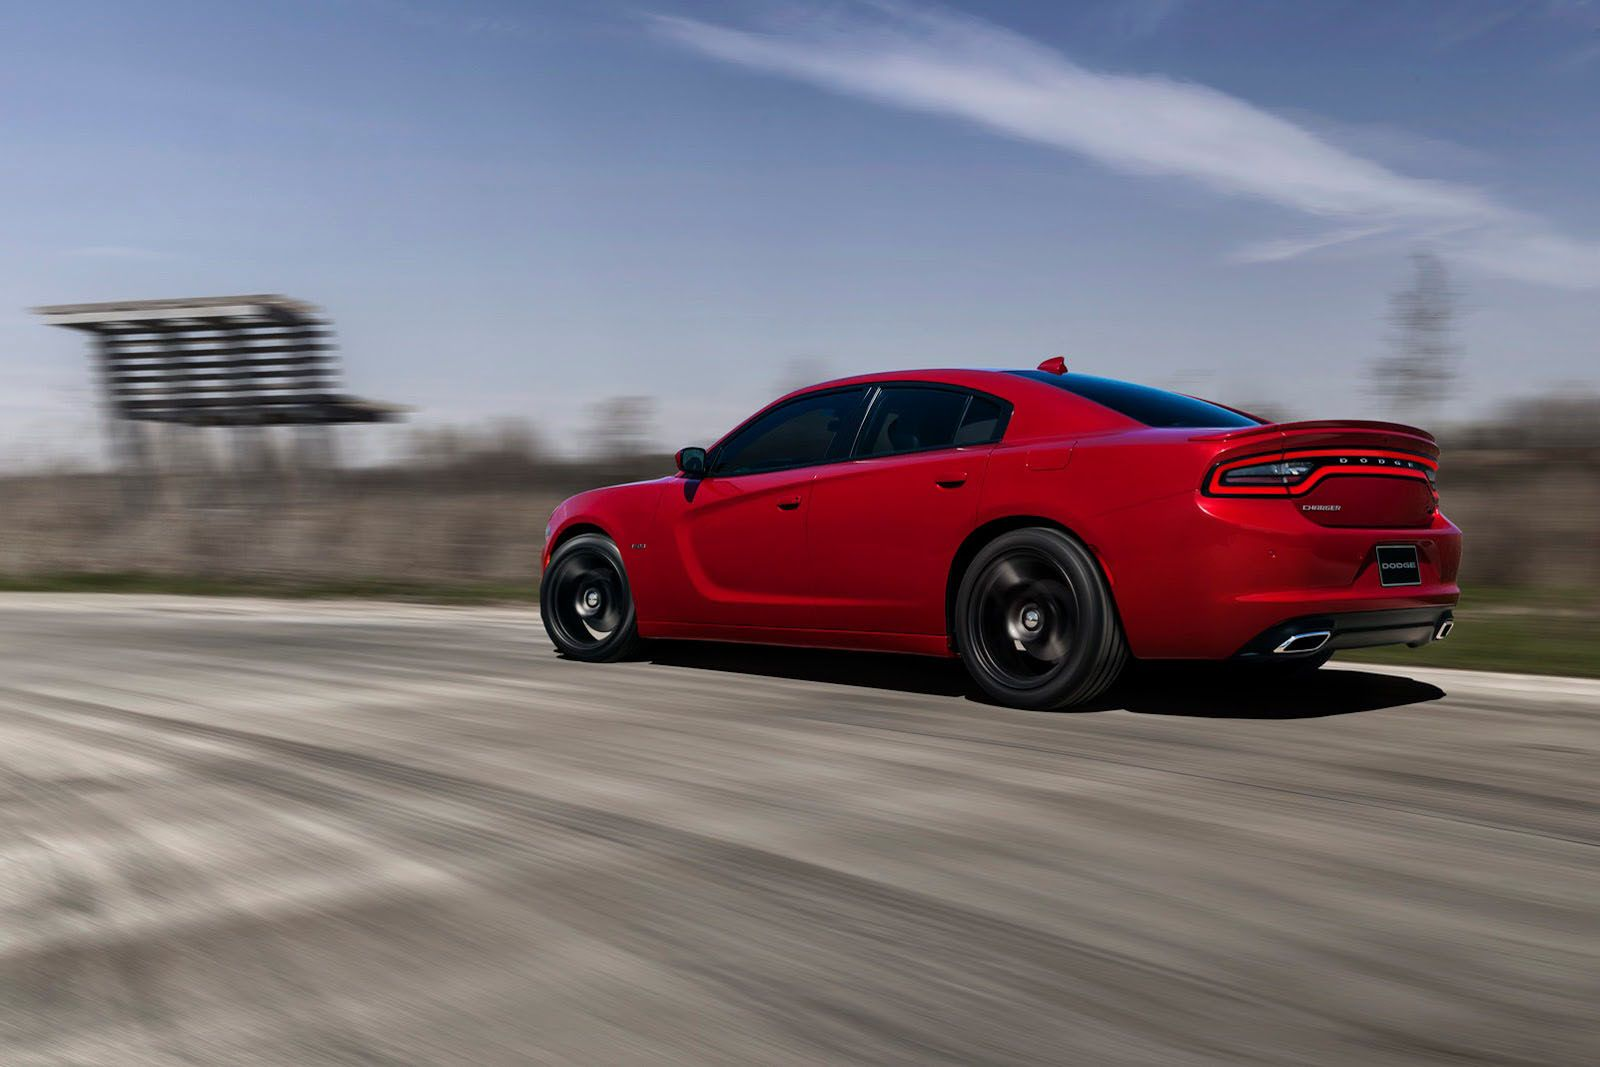 Gadget Lust: Dodge Charger SXT Is A Muscle Car Thatu0027ll Make Your Heart Go  Boom! Boom! Boom!